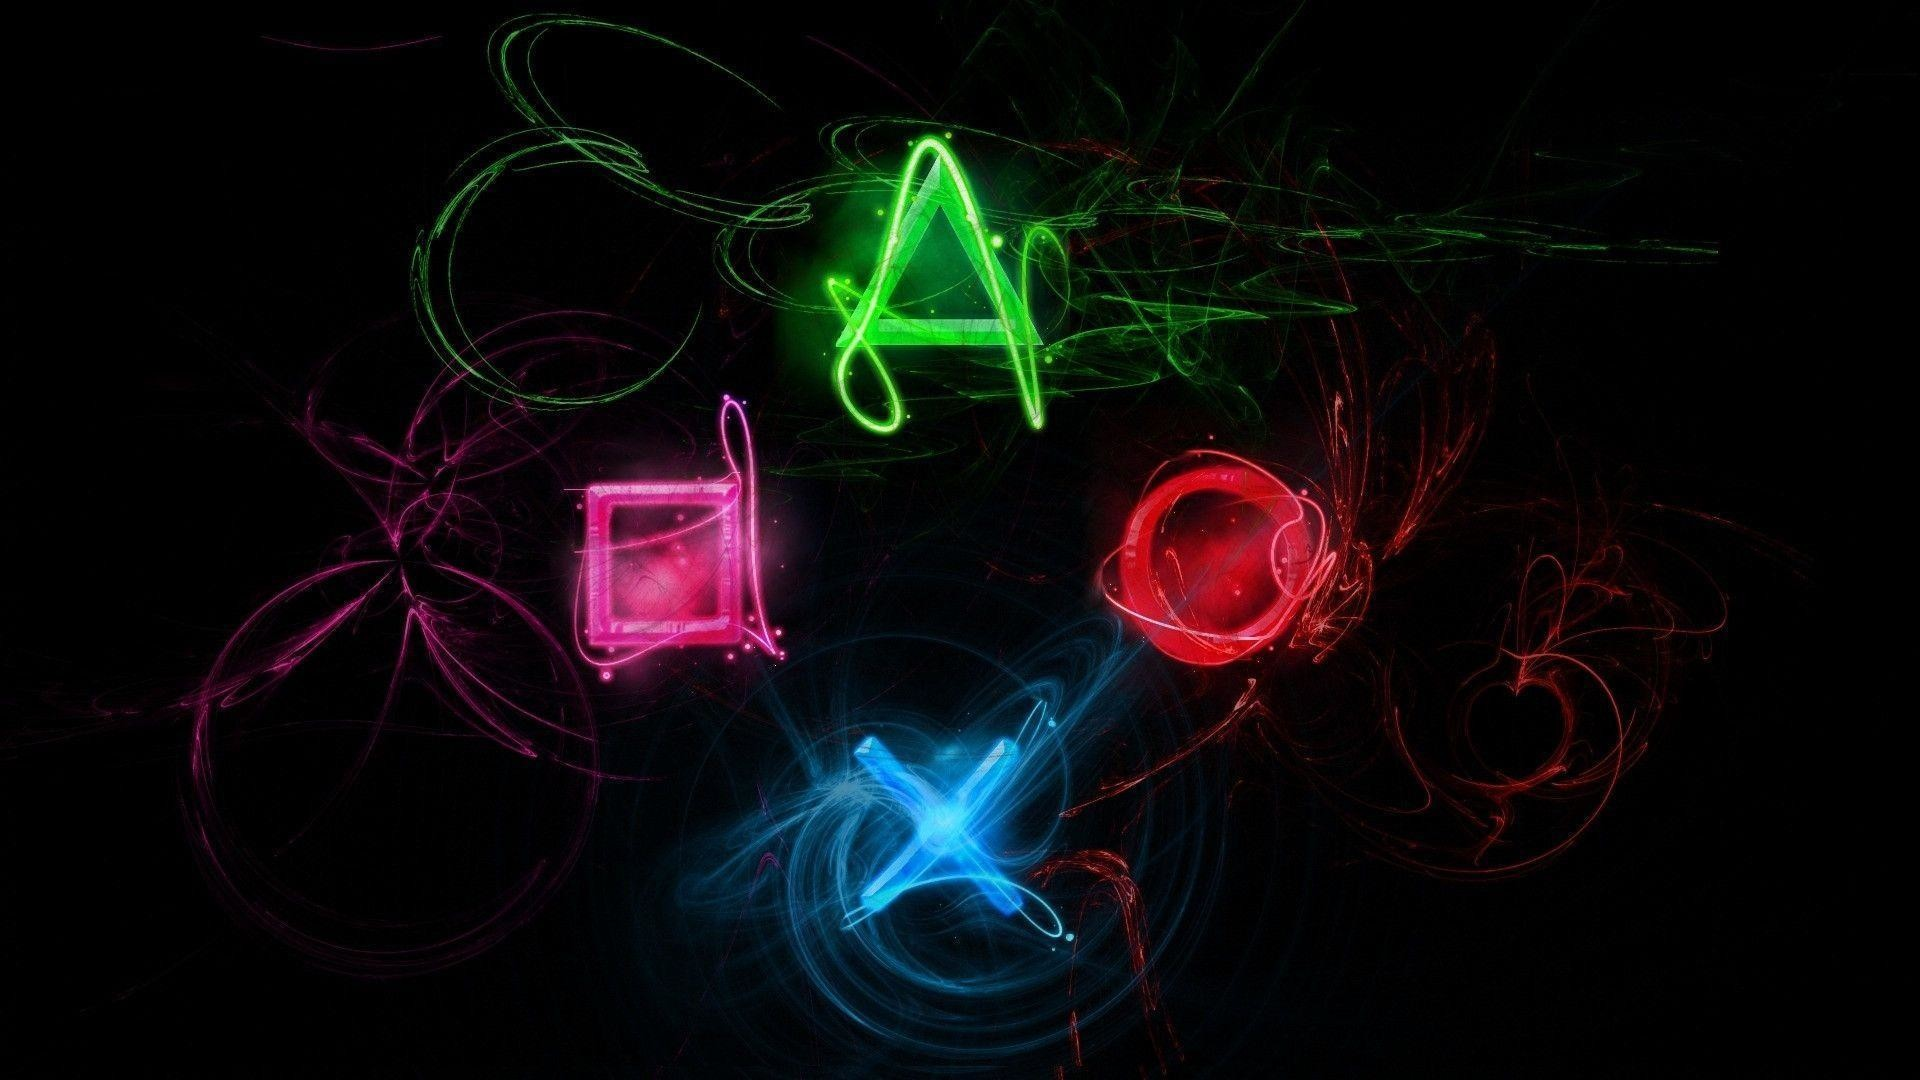 Ps3 Wallpapers Hd 1080p Images & Pictures – Becuo